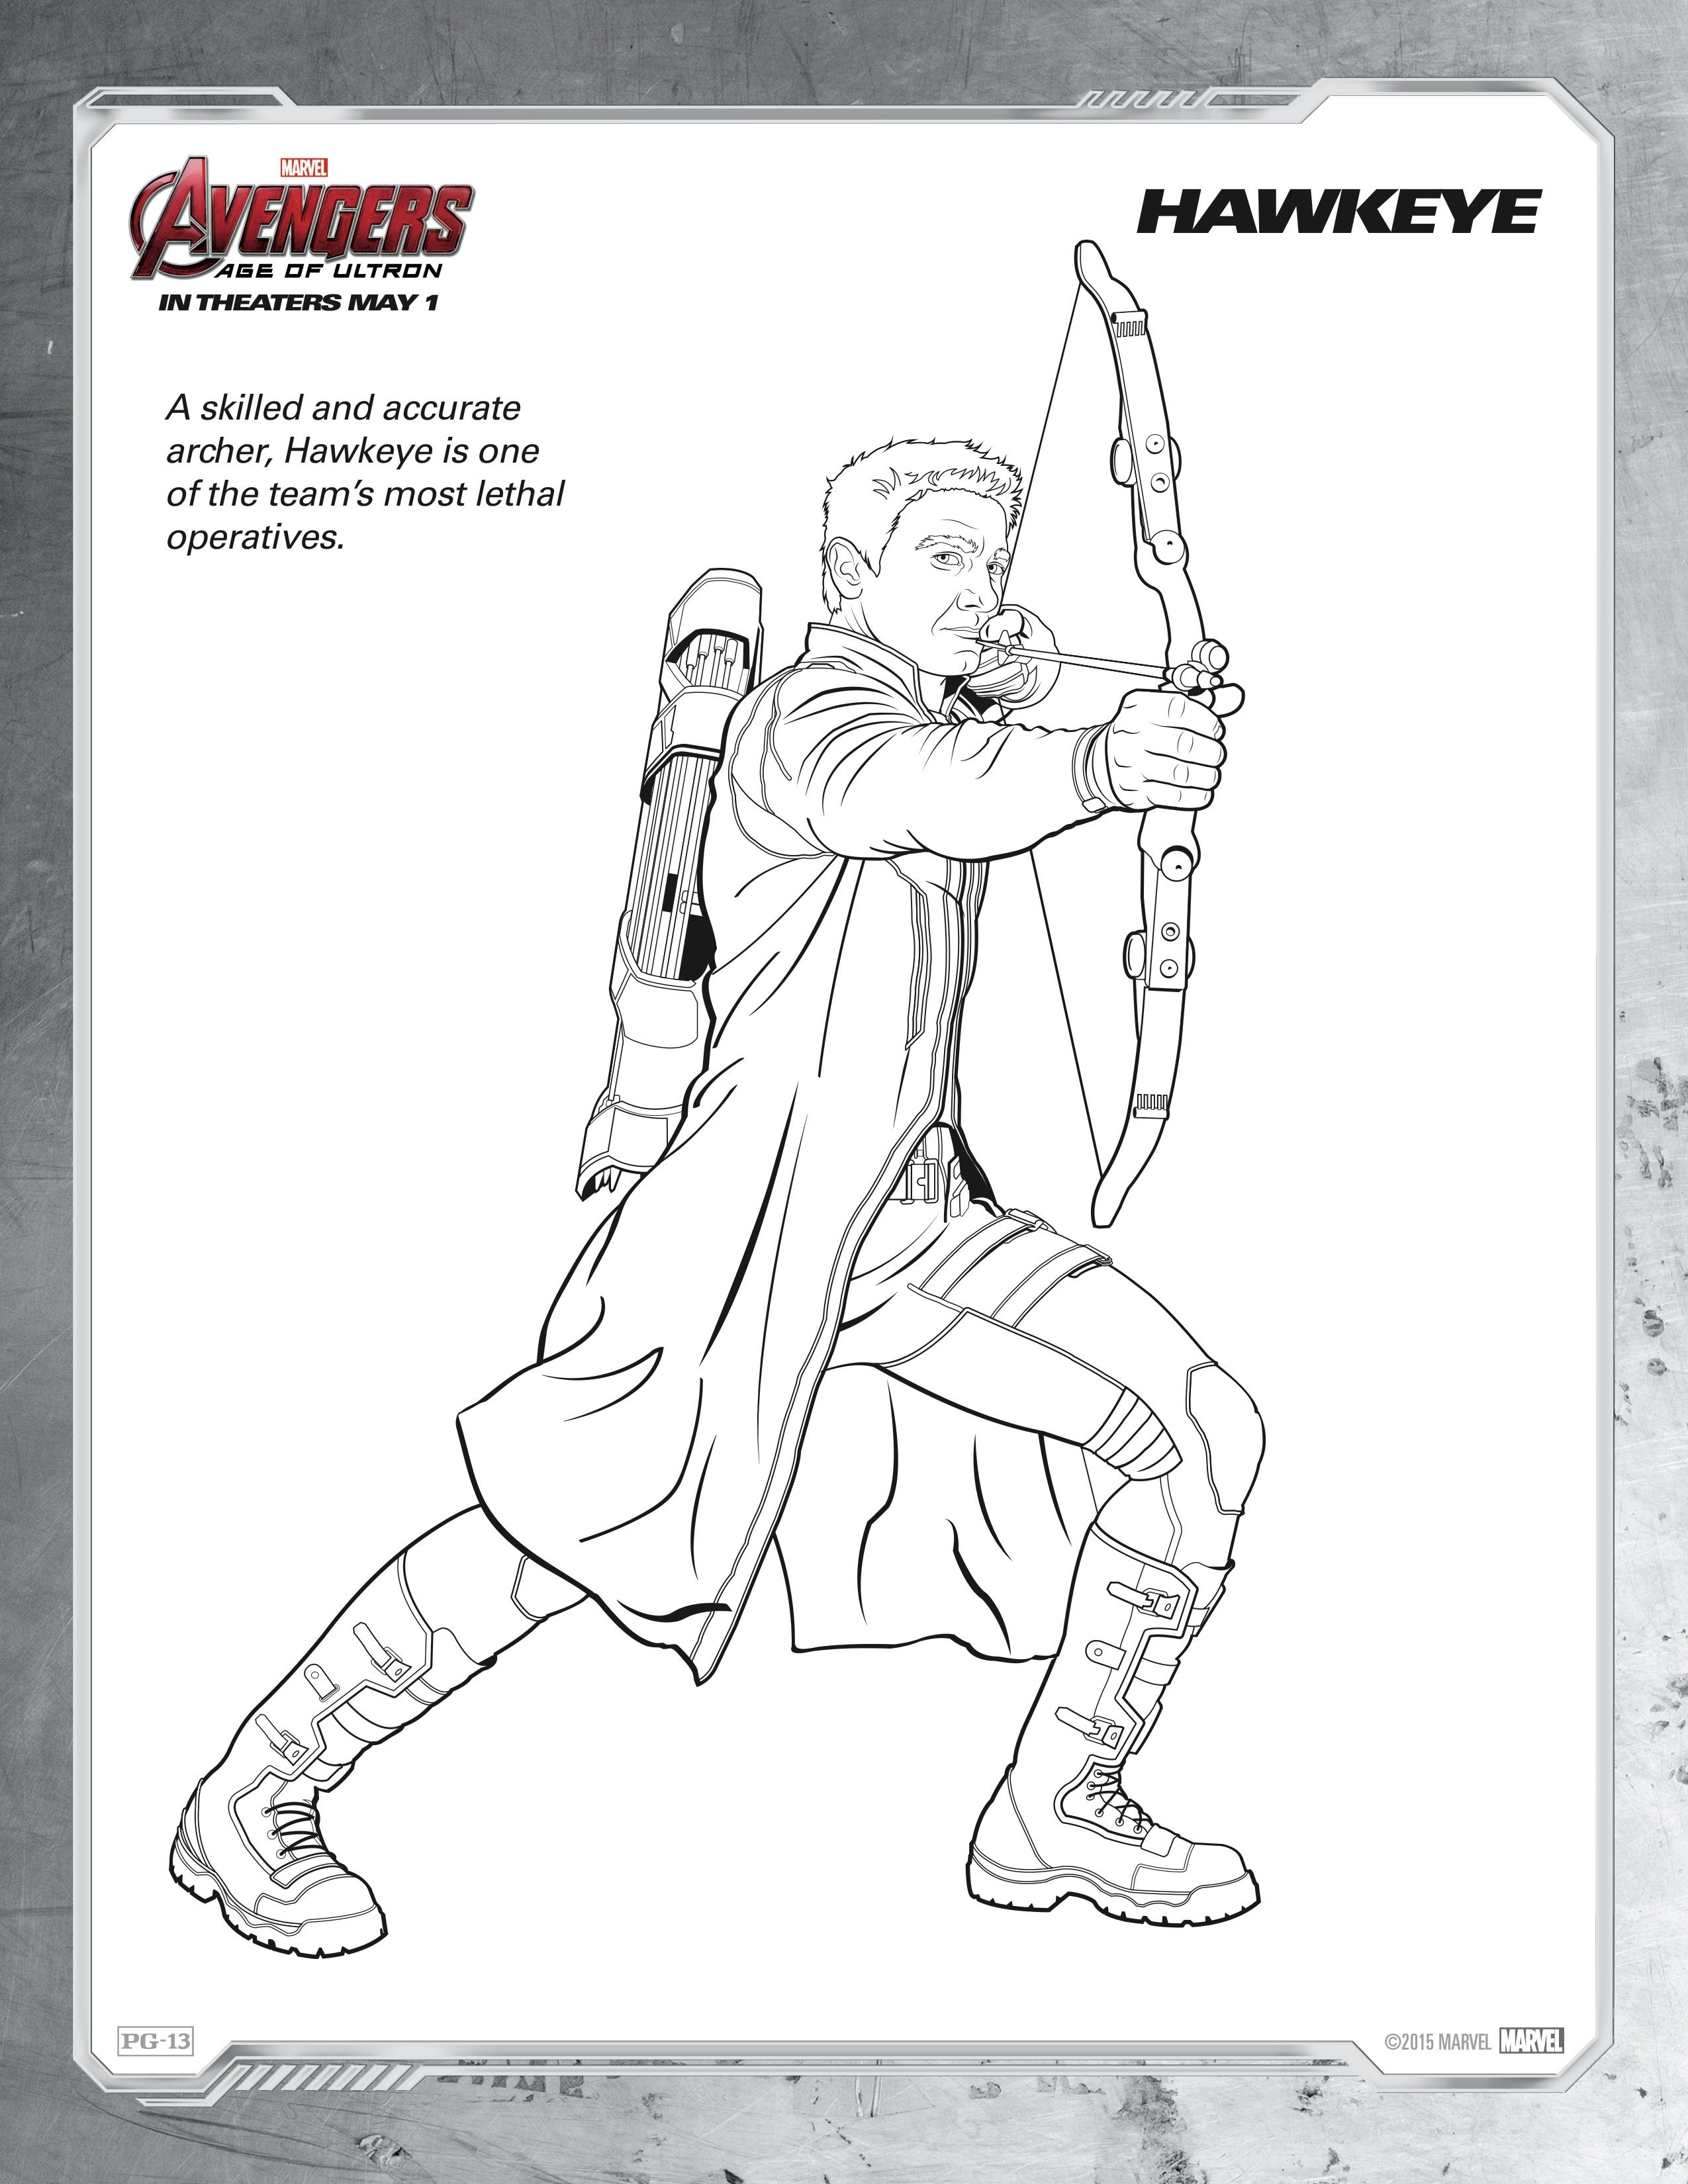 Avengers Coloring Page3 Jpg 2 550 3 300 Pixels Avengers Coloring